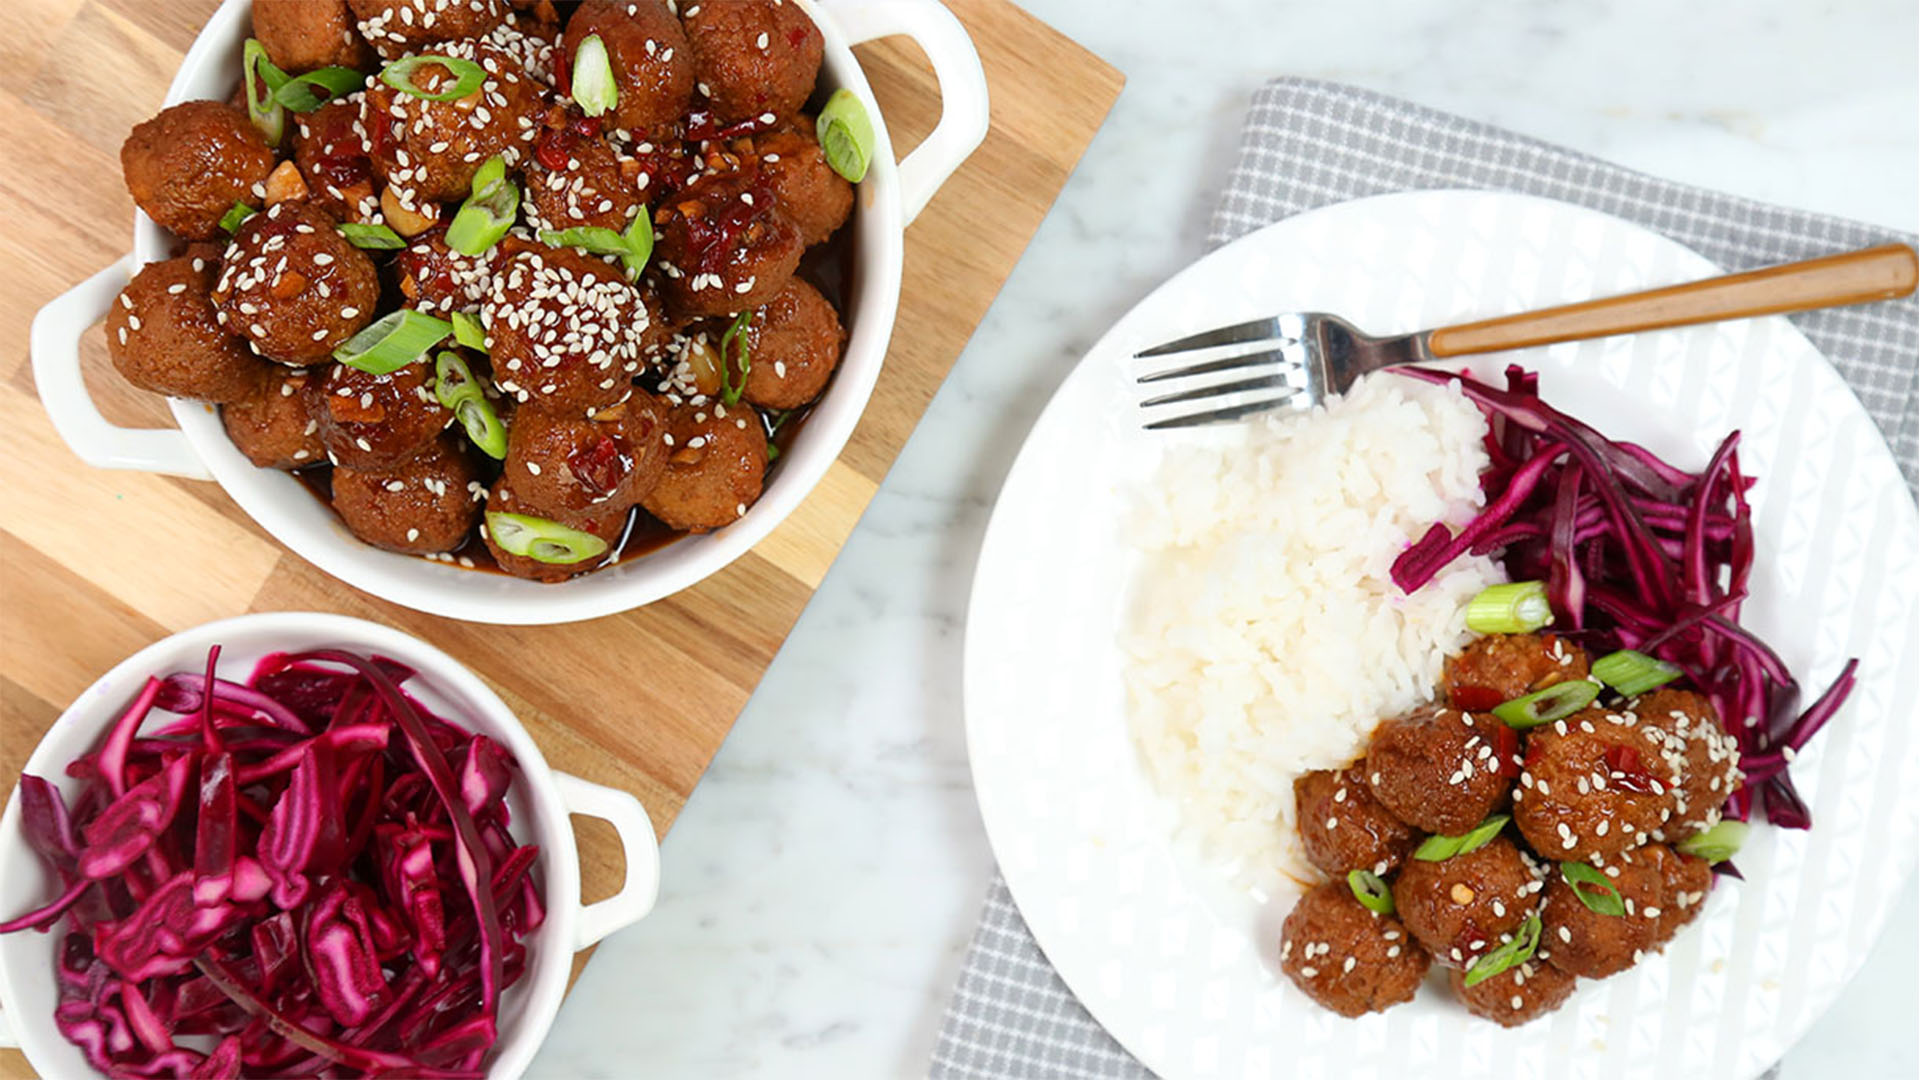 Asian-Style-Meatballs_16x9_The-Domestic-Geek